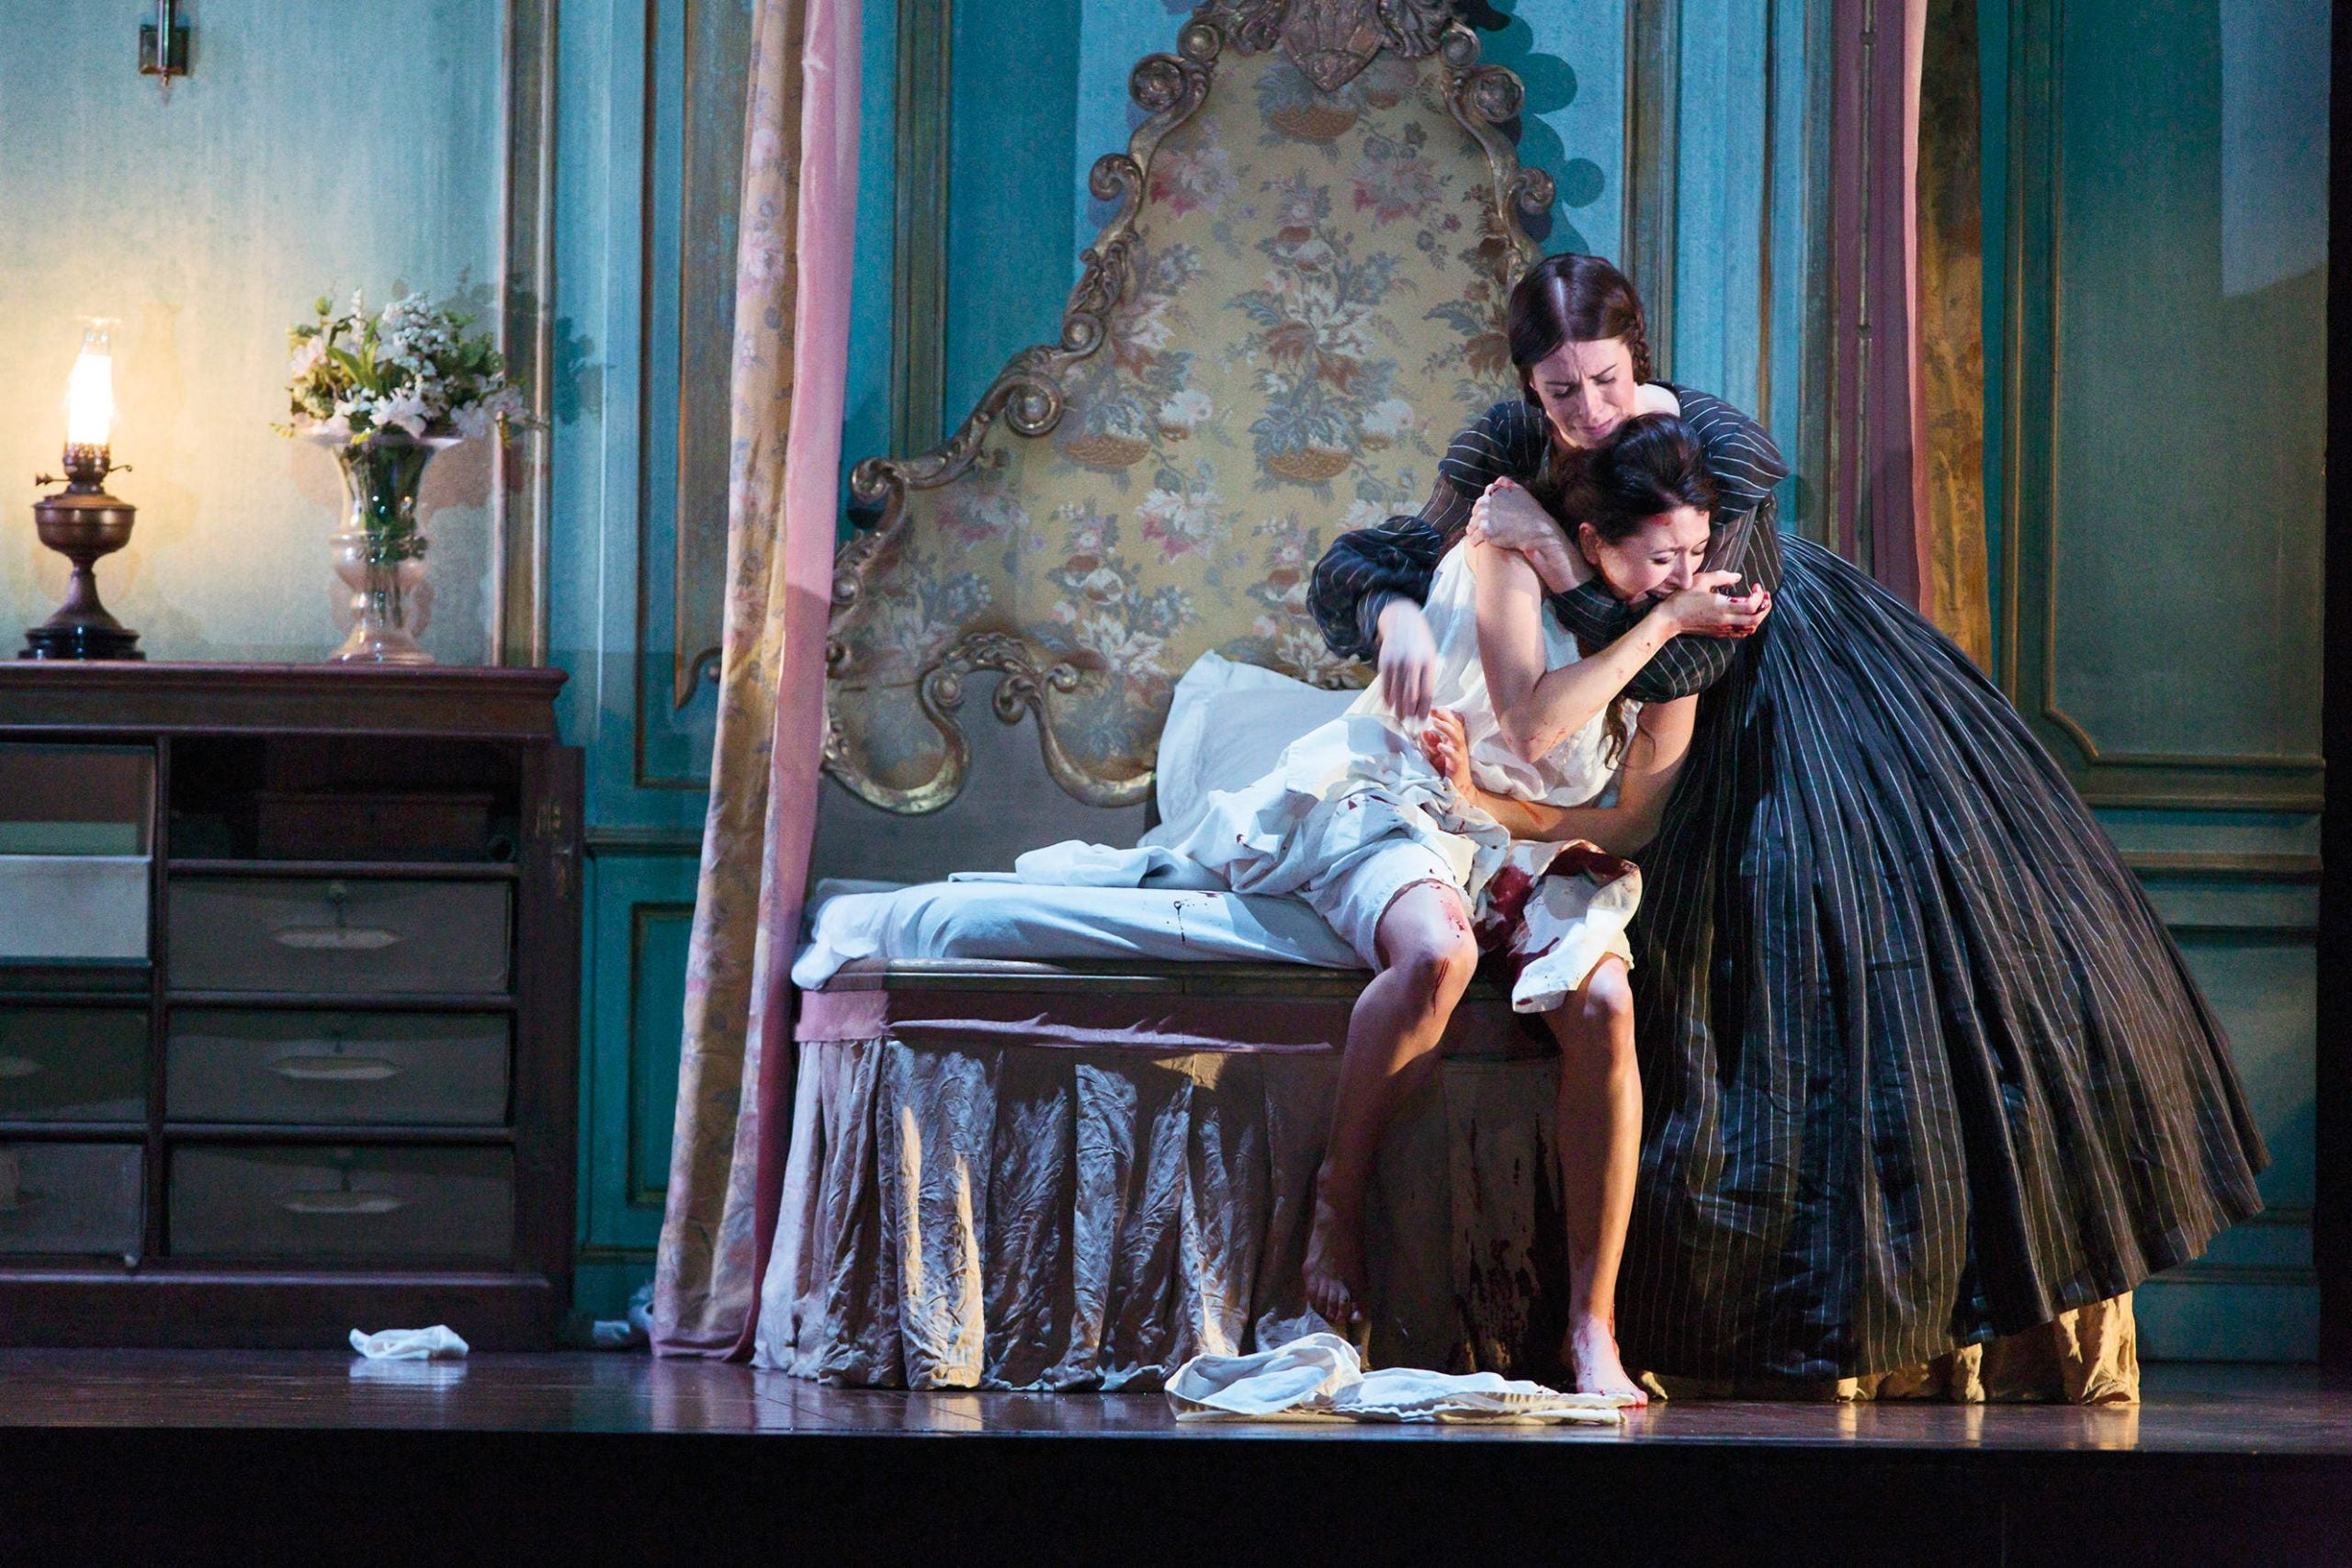 Lucia di Lammermoor: even a director with a feminist agenda can't save her from her fate